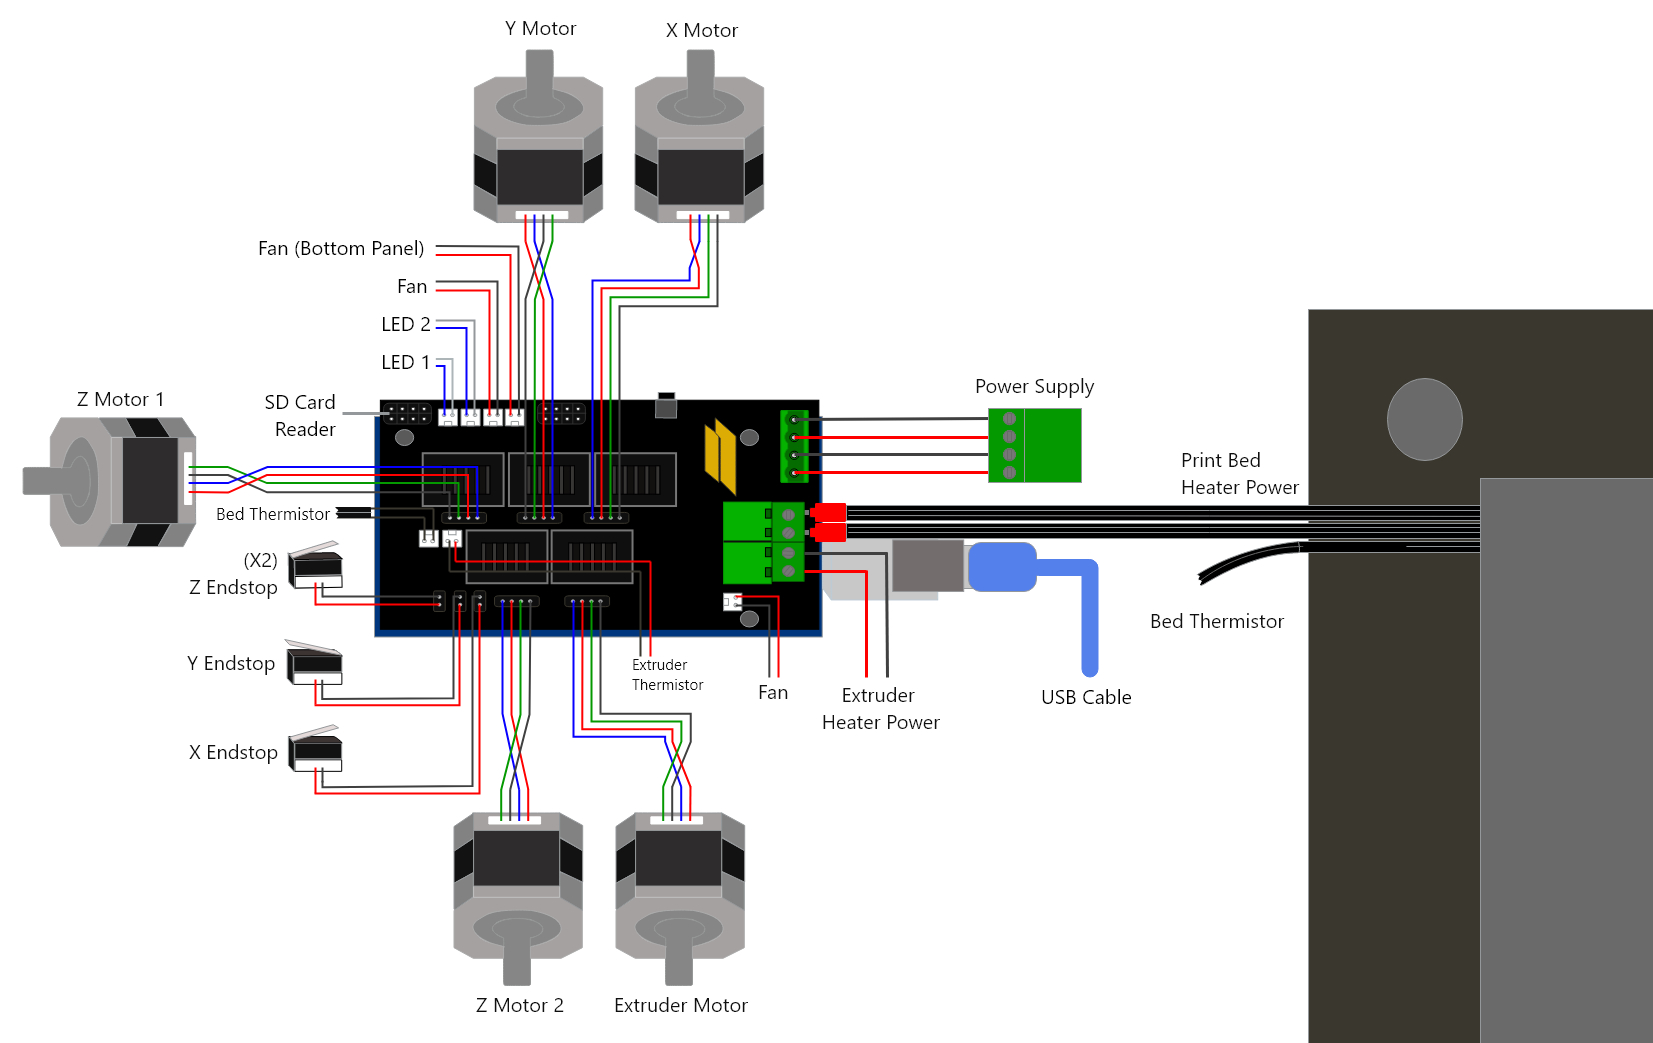 R1+ Ramps Board Wiring Diagram – Robo Help Center - Ramps 1.4 Wiring Diagram